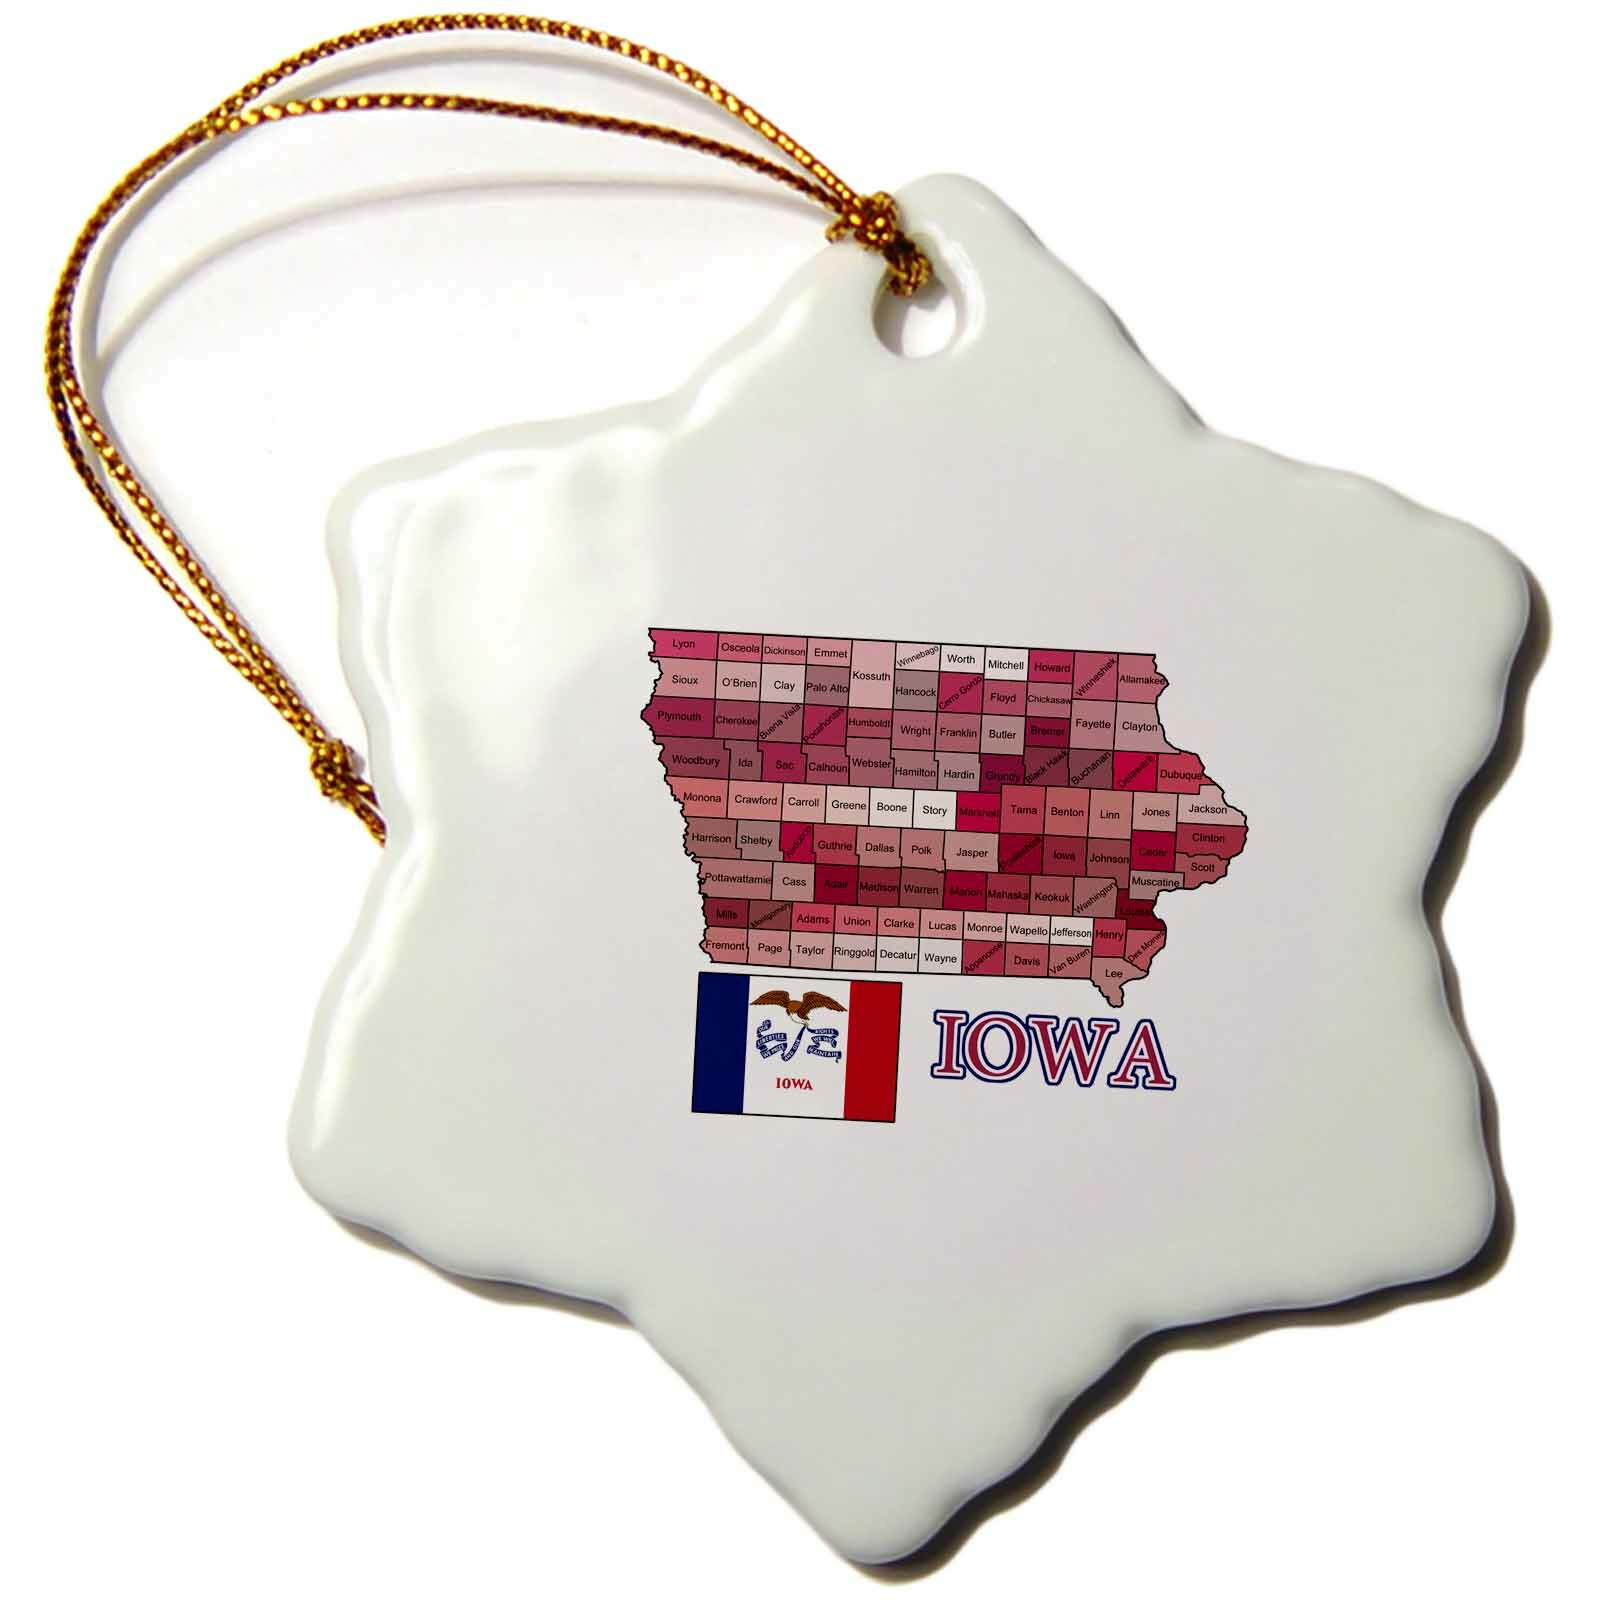 The Holiday Aisle Flag And Map Of Iowa Showing All The Counties In Different Colors Snowflake Holiday Shaped Ornament Wayfair